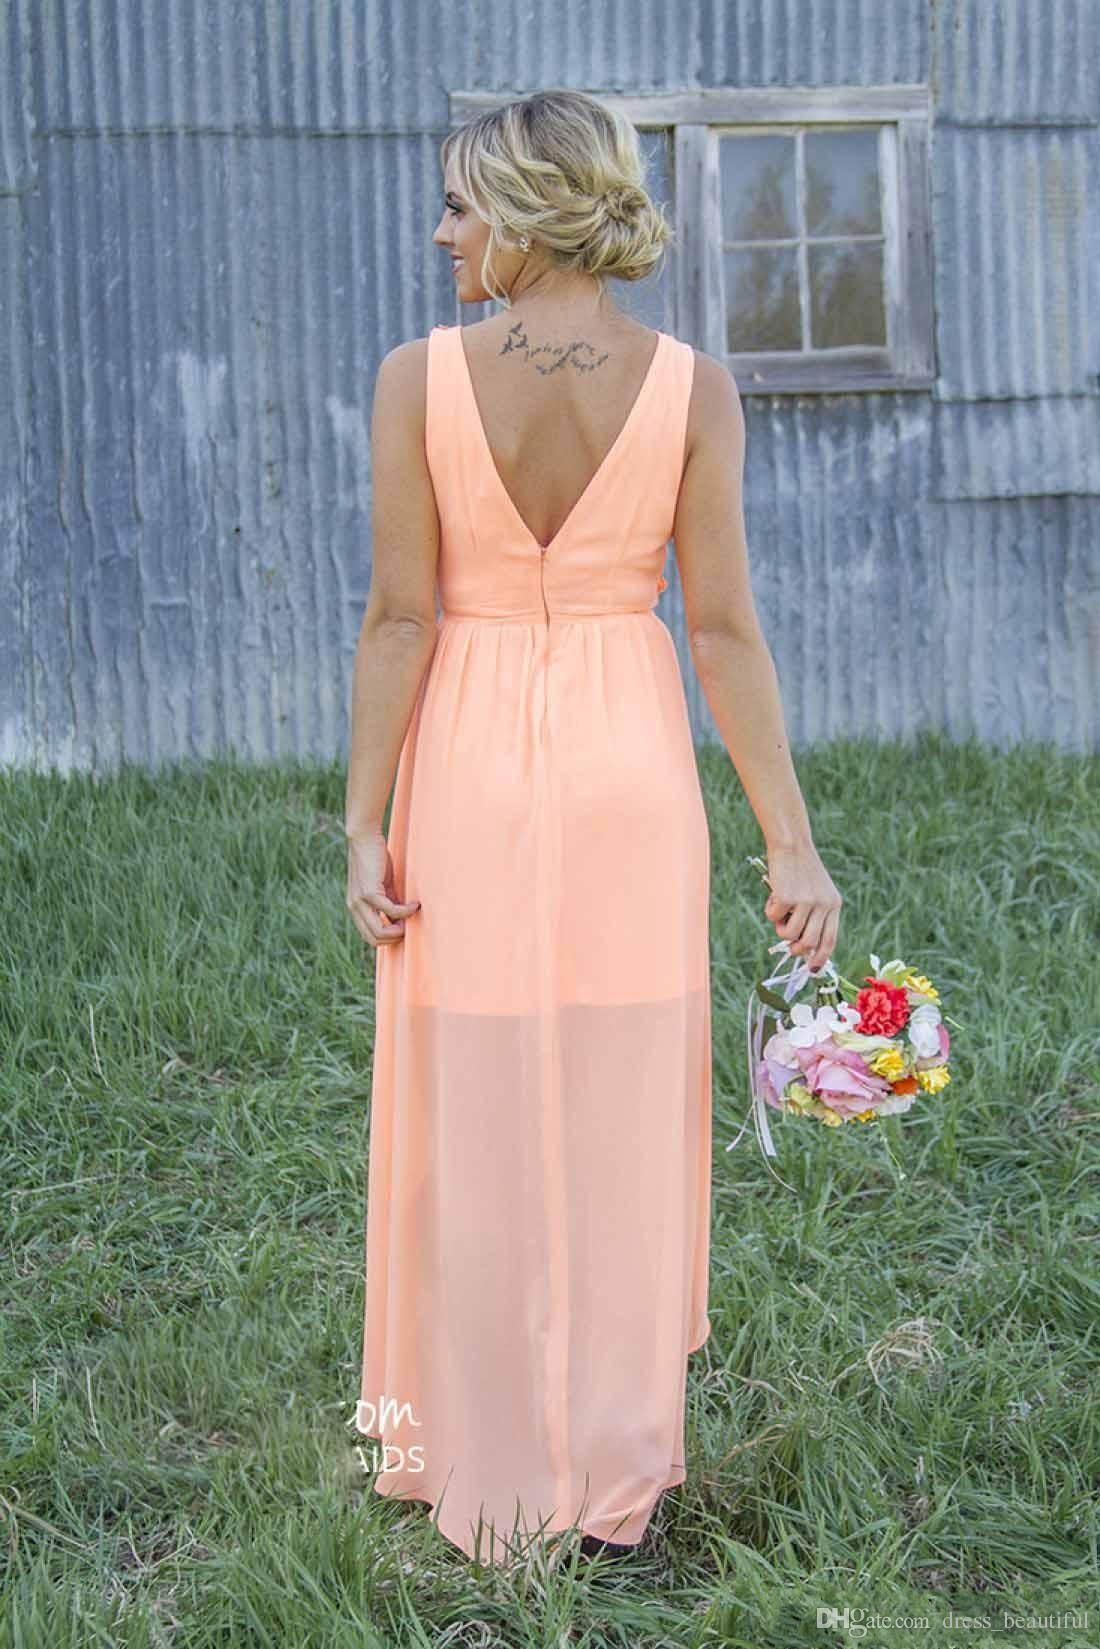 New 2016 mint orange country bridesmaid dress under 100 hi lo new 2016 mint orange country bridesmaid dress under 100 hi lo chiffon maid of ombrellifo Image collections